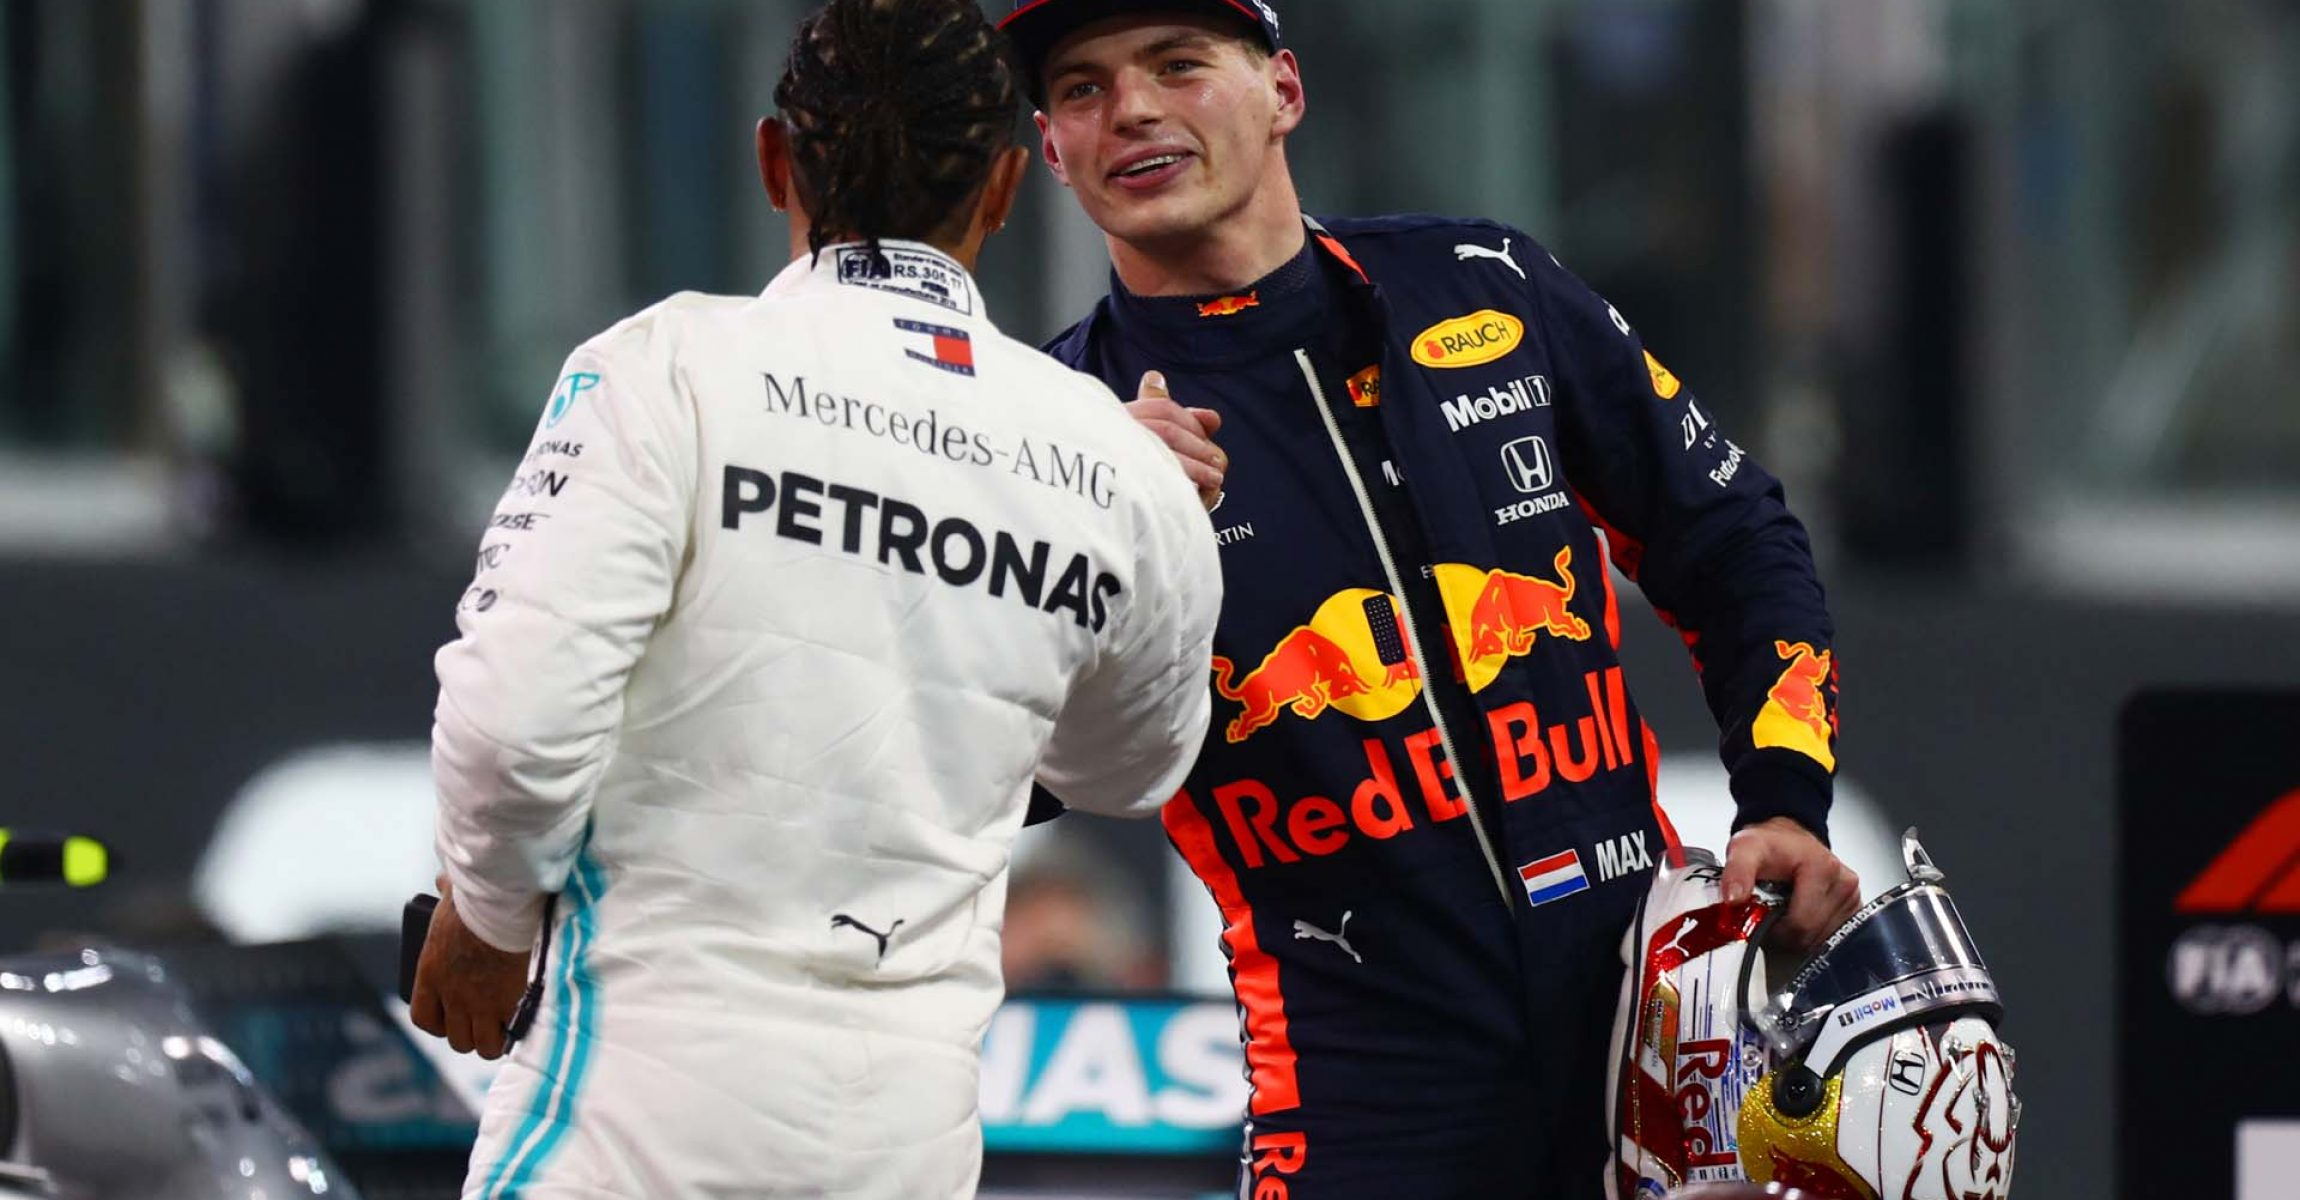 ABU DHABI, UNITED ARAB EMIRATES - NOVEMBER 30: Pole position qualifier Lewis Hamilton of Great Britain and Mercedes GP is congratulated by third placed qualifier Max Verstappen of Netherlands and Red Bull Racing in parc ferme during qualifying for the F1 Grand Prix of Abu Dhabi at Yas Marina Circuit on November 30, 2019 in Abu Dhabi, United Arab Emirates. (Photo by Dan Istitene/Getty Images) // Getty Images / Red Bull Content Pool // AP-22BHGCD9S1W11 // Usage for editorial use only //